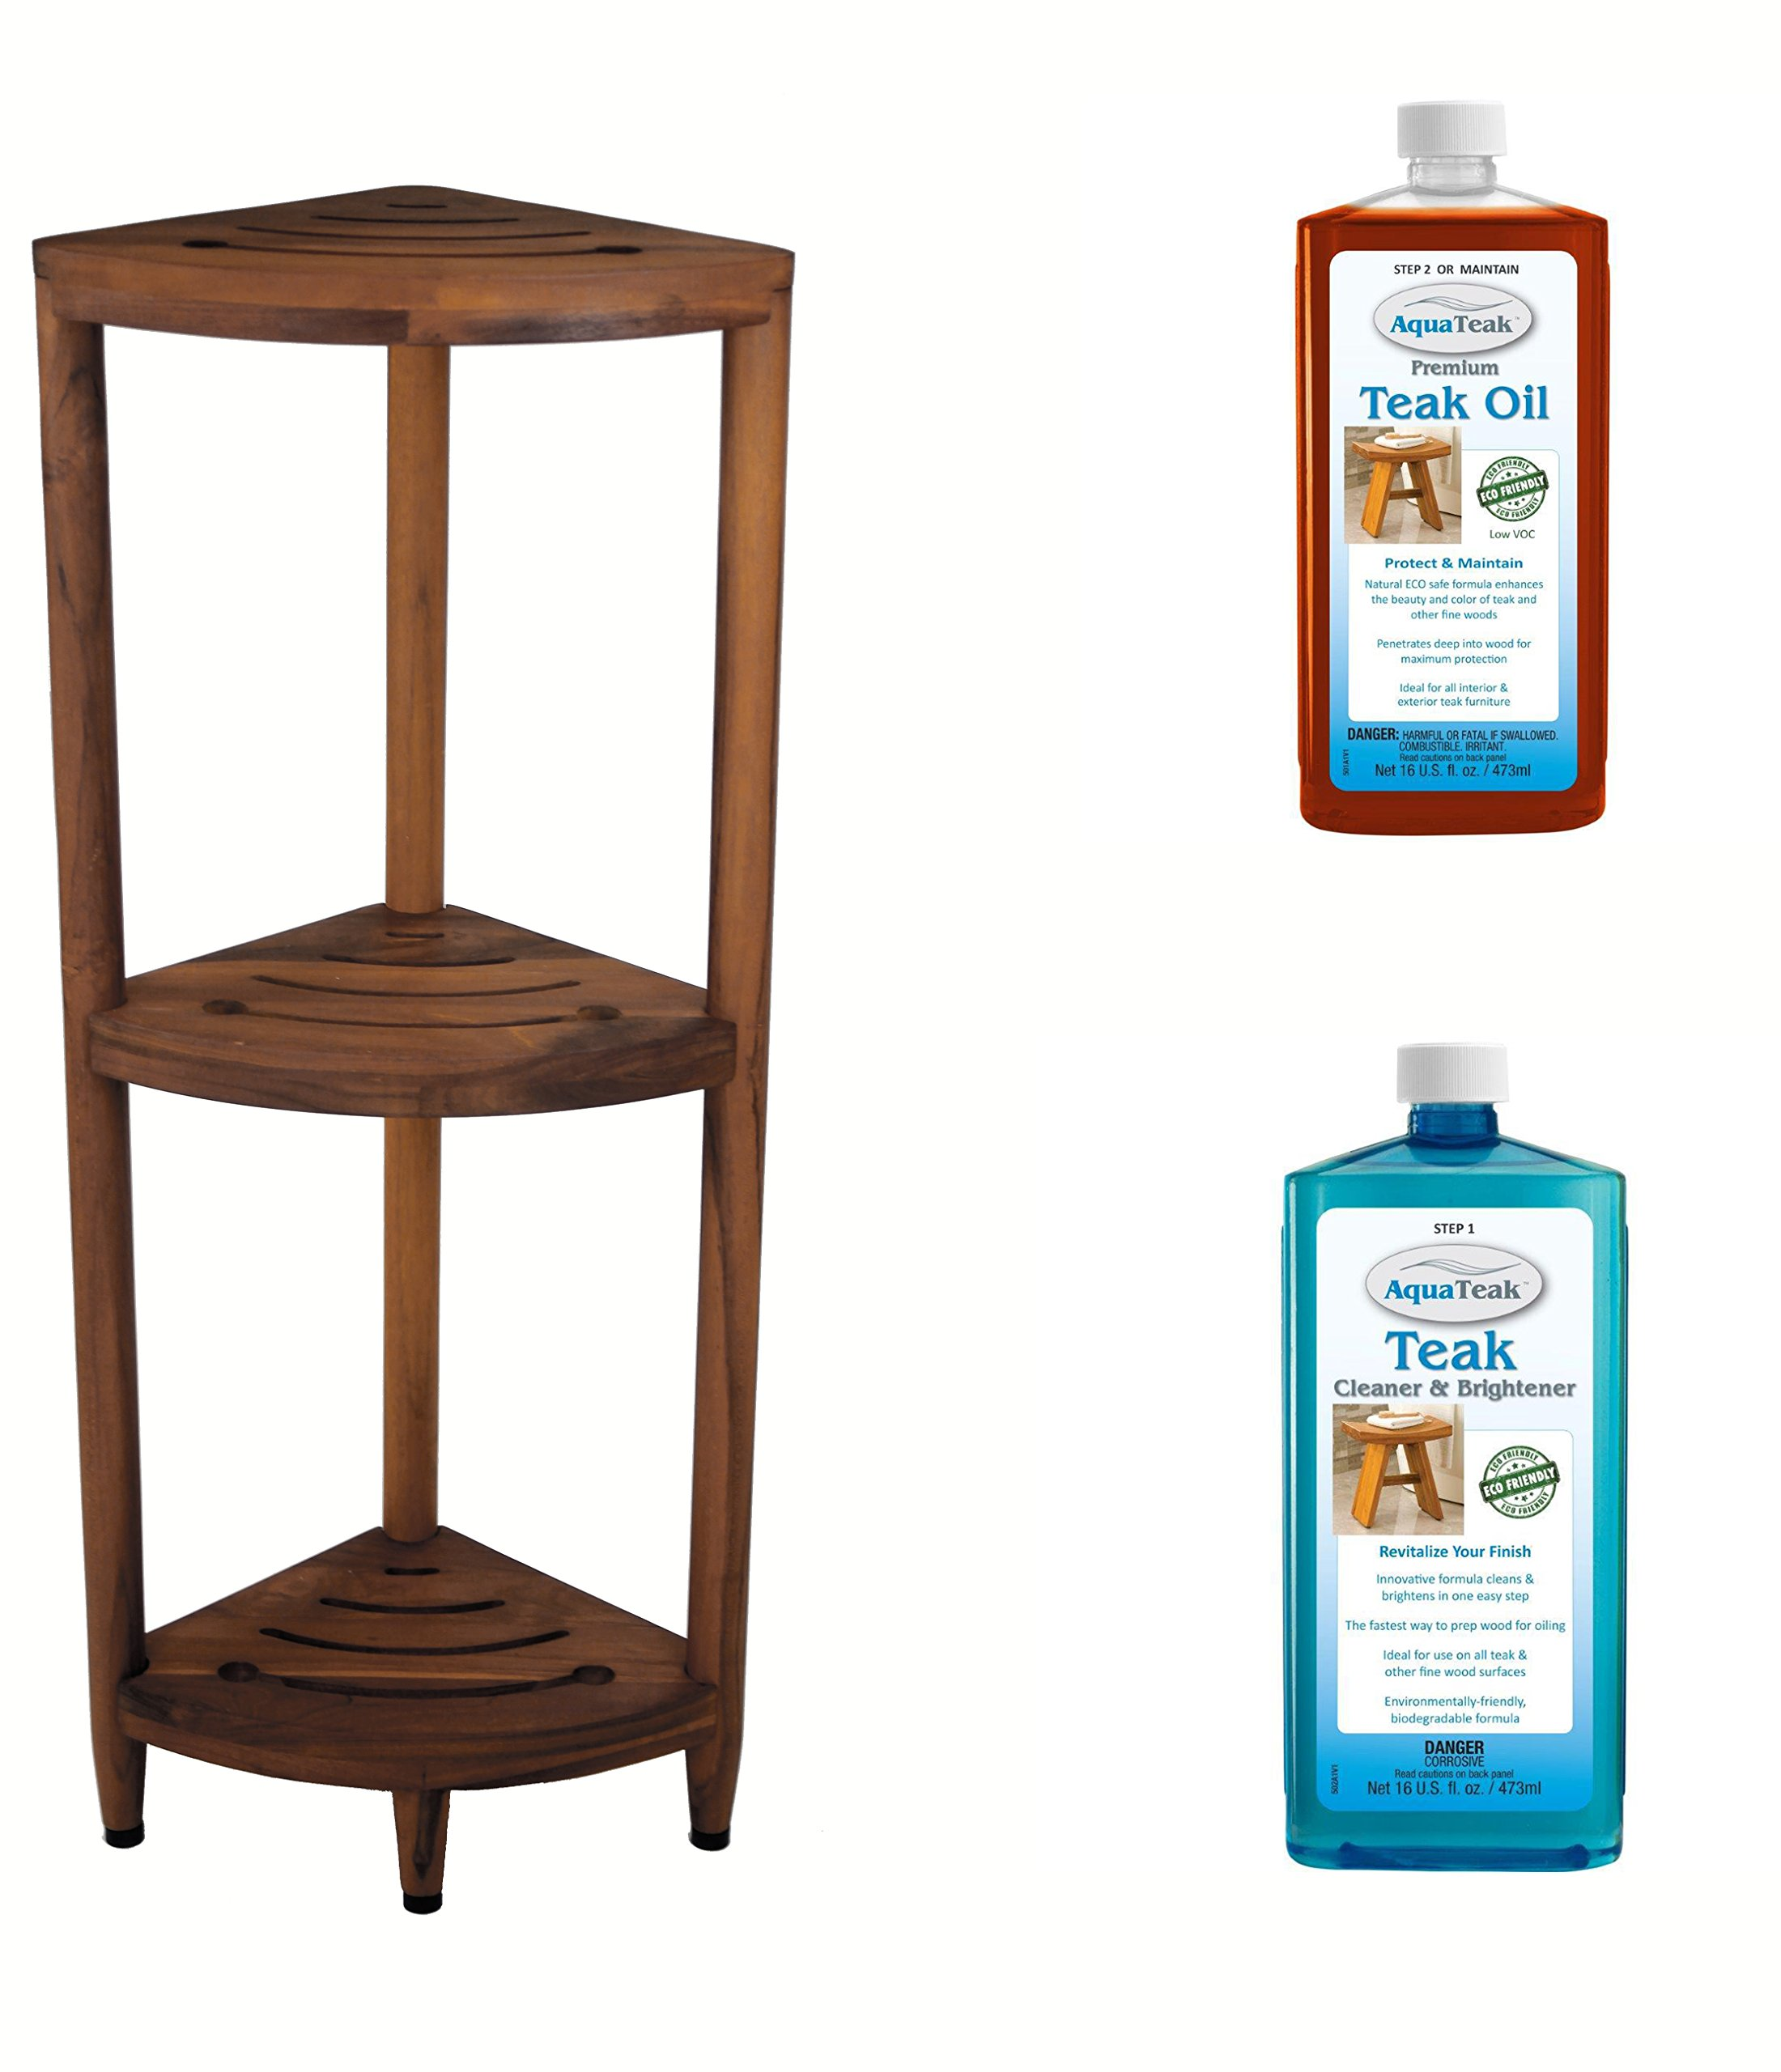 The Original Kai Corner Teak Bath Shelf & AquaTeak Two-Step Care Kit